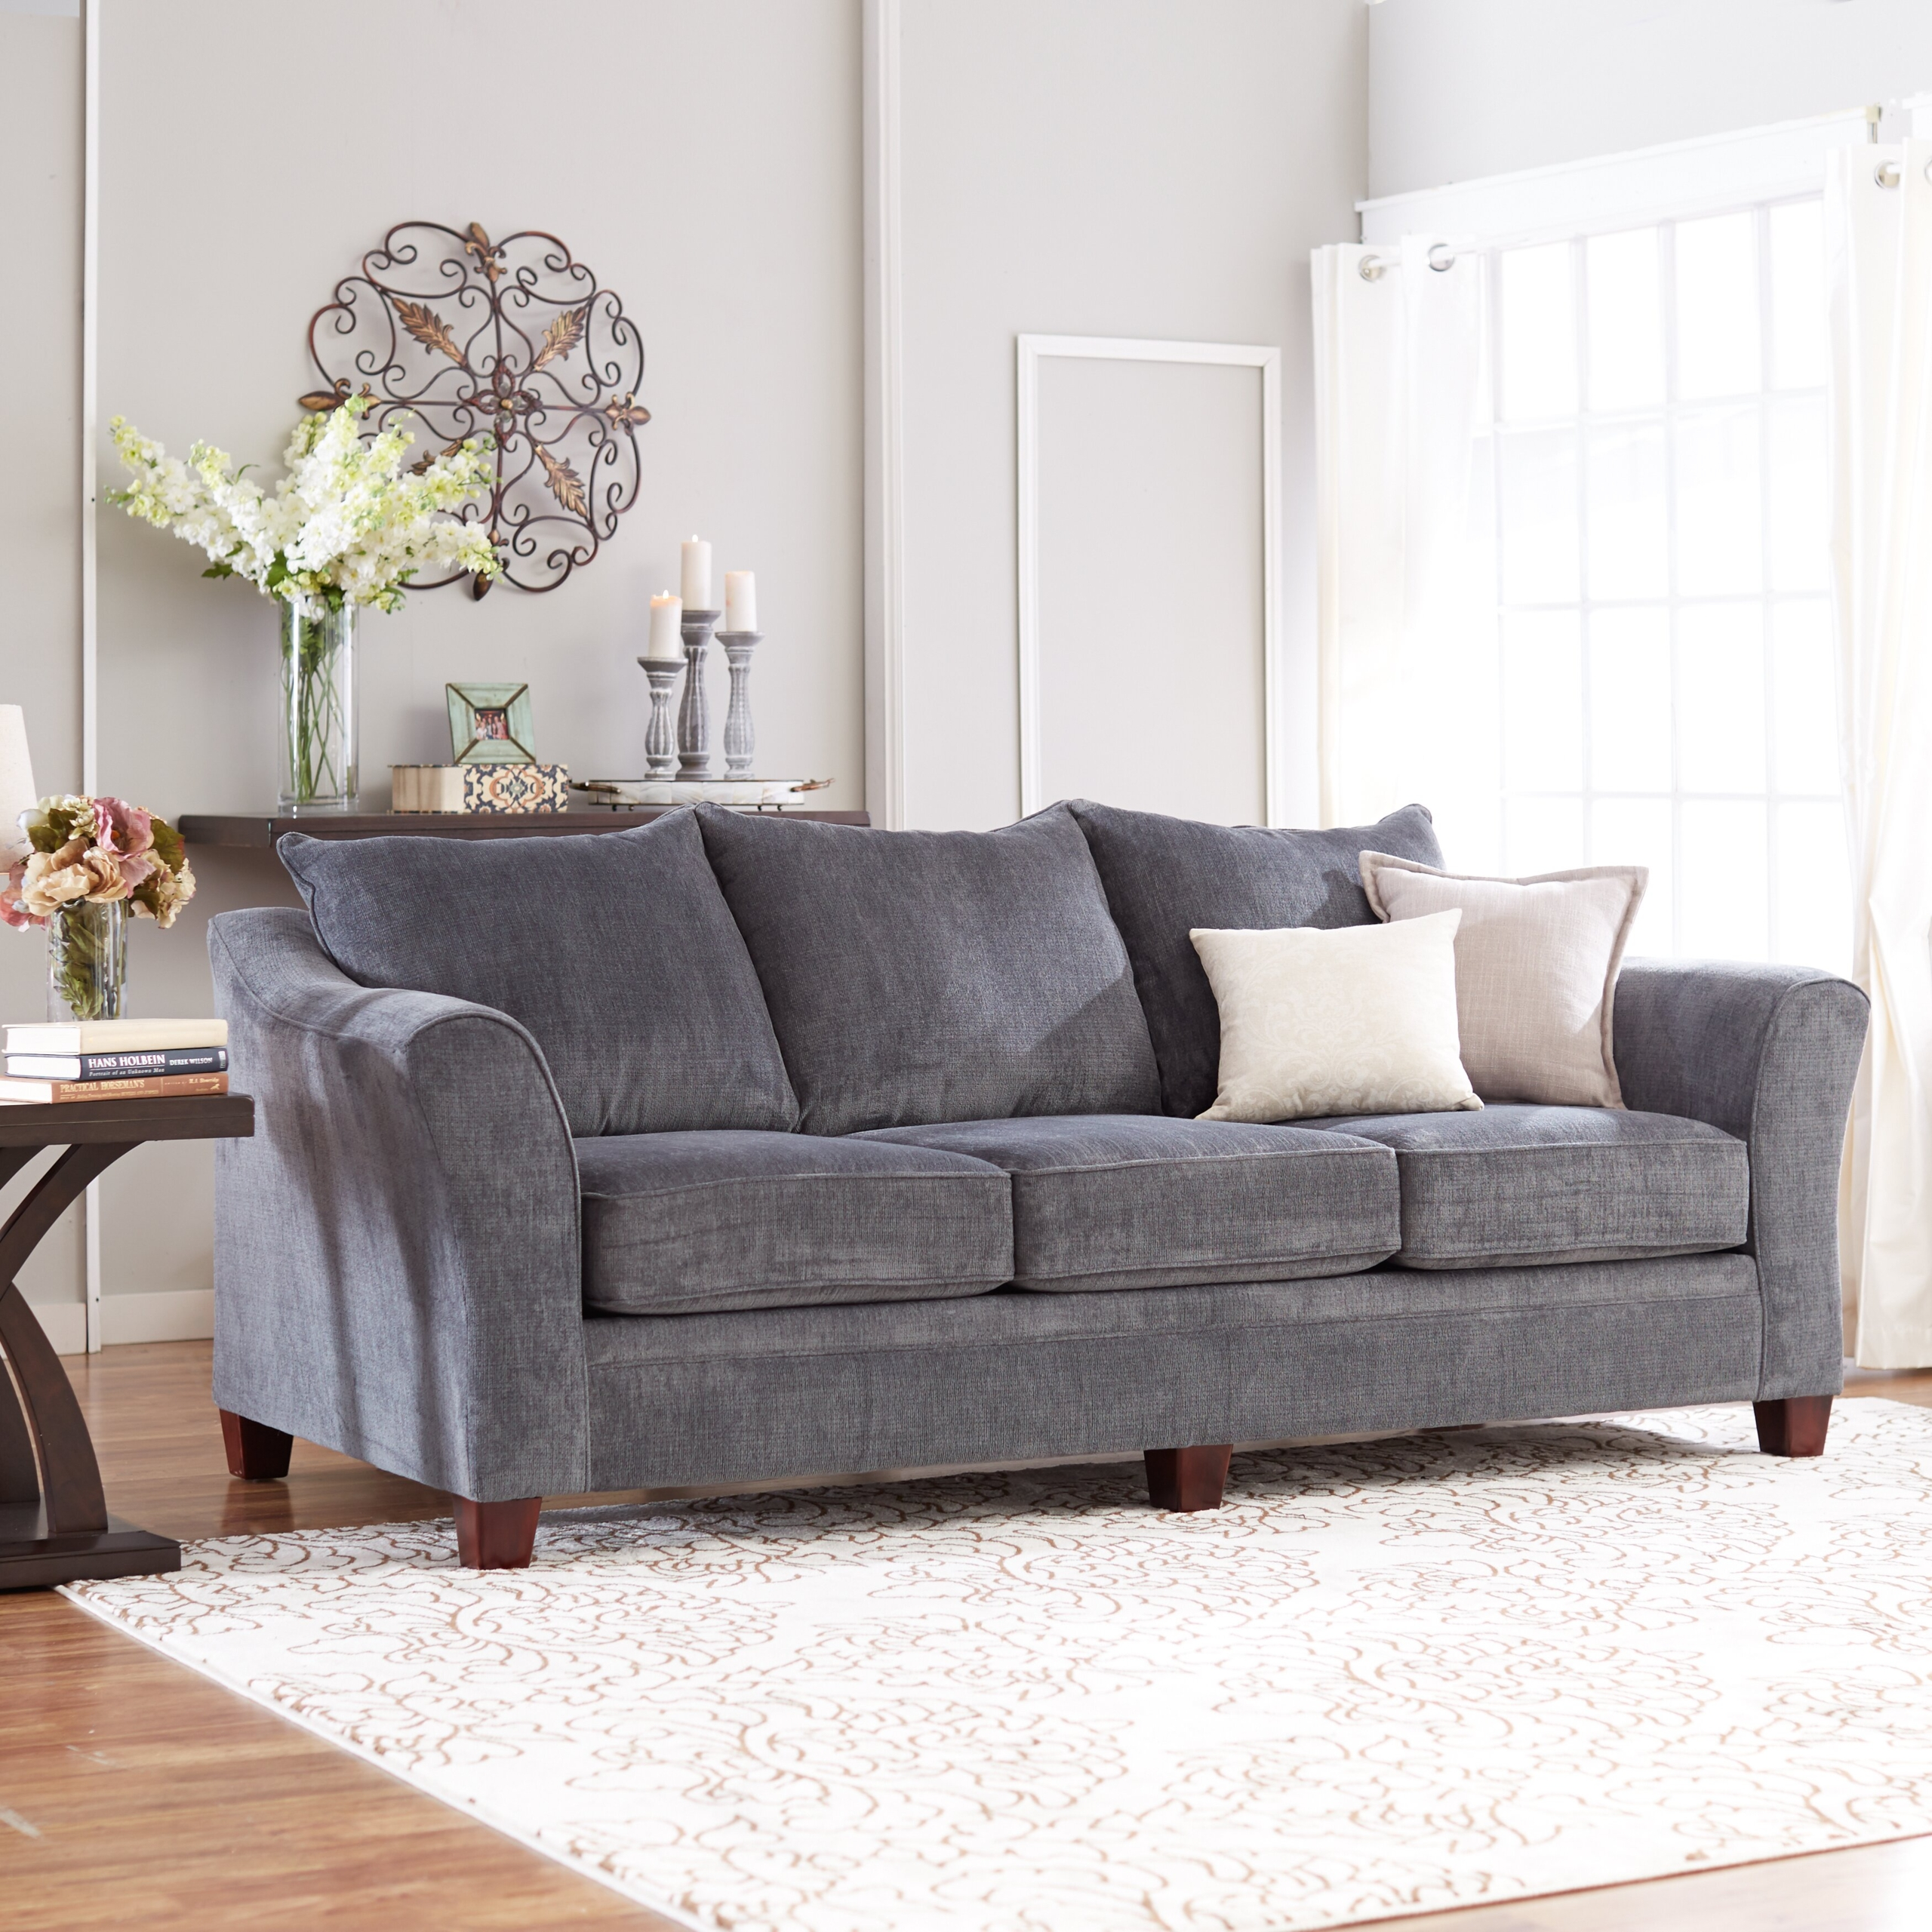 Beau Derry Sofa By Simmons Upholstery